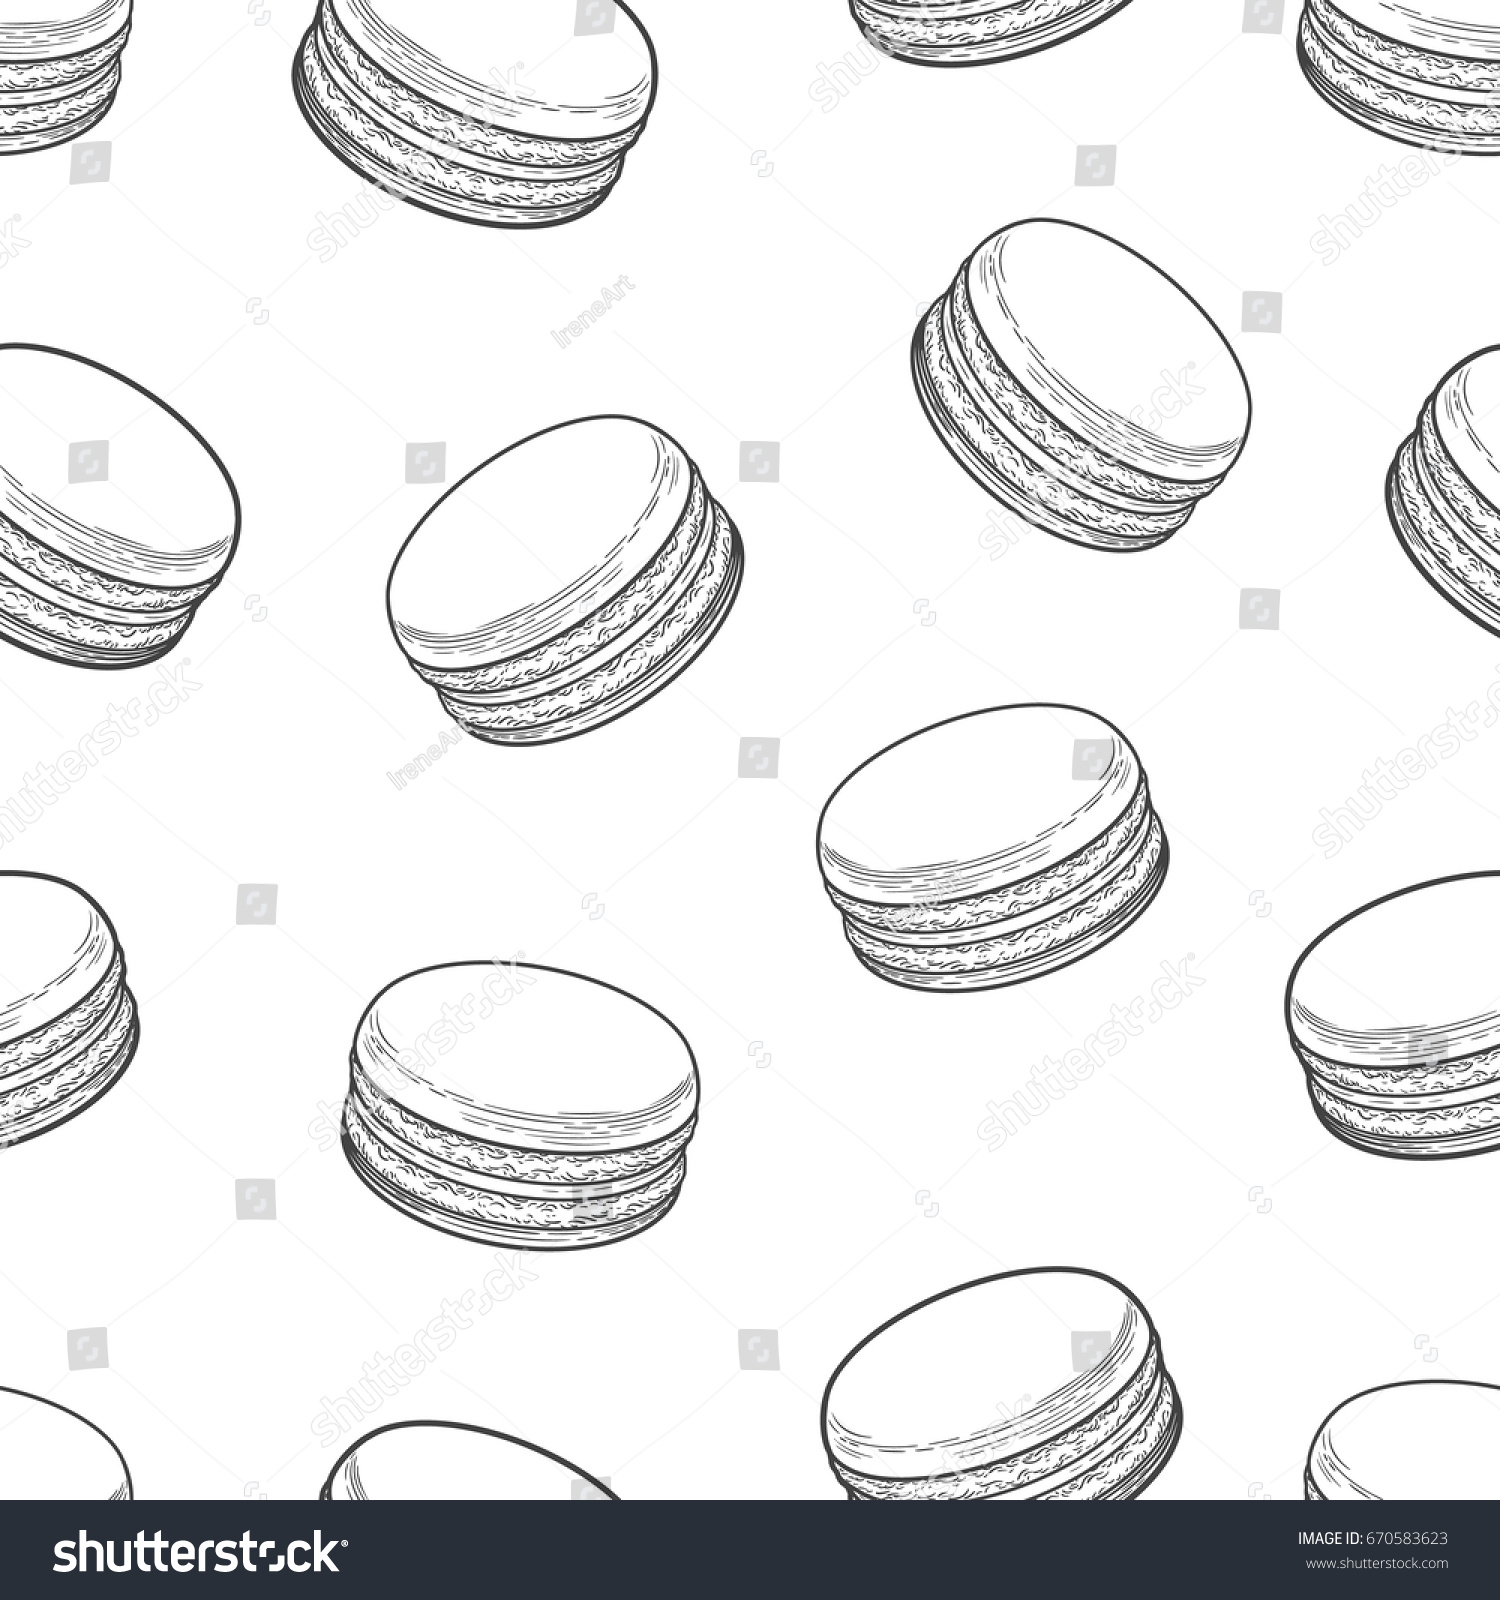 French Macarons Cookies Seamless Pattern Doodle Decorative Hand Drawn Vector Illustration